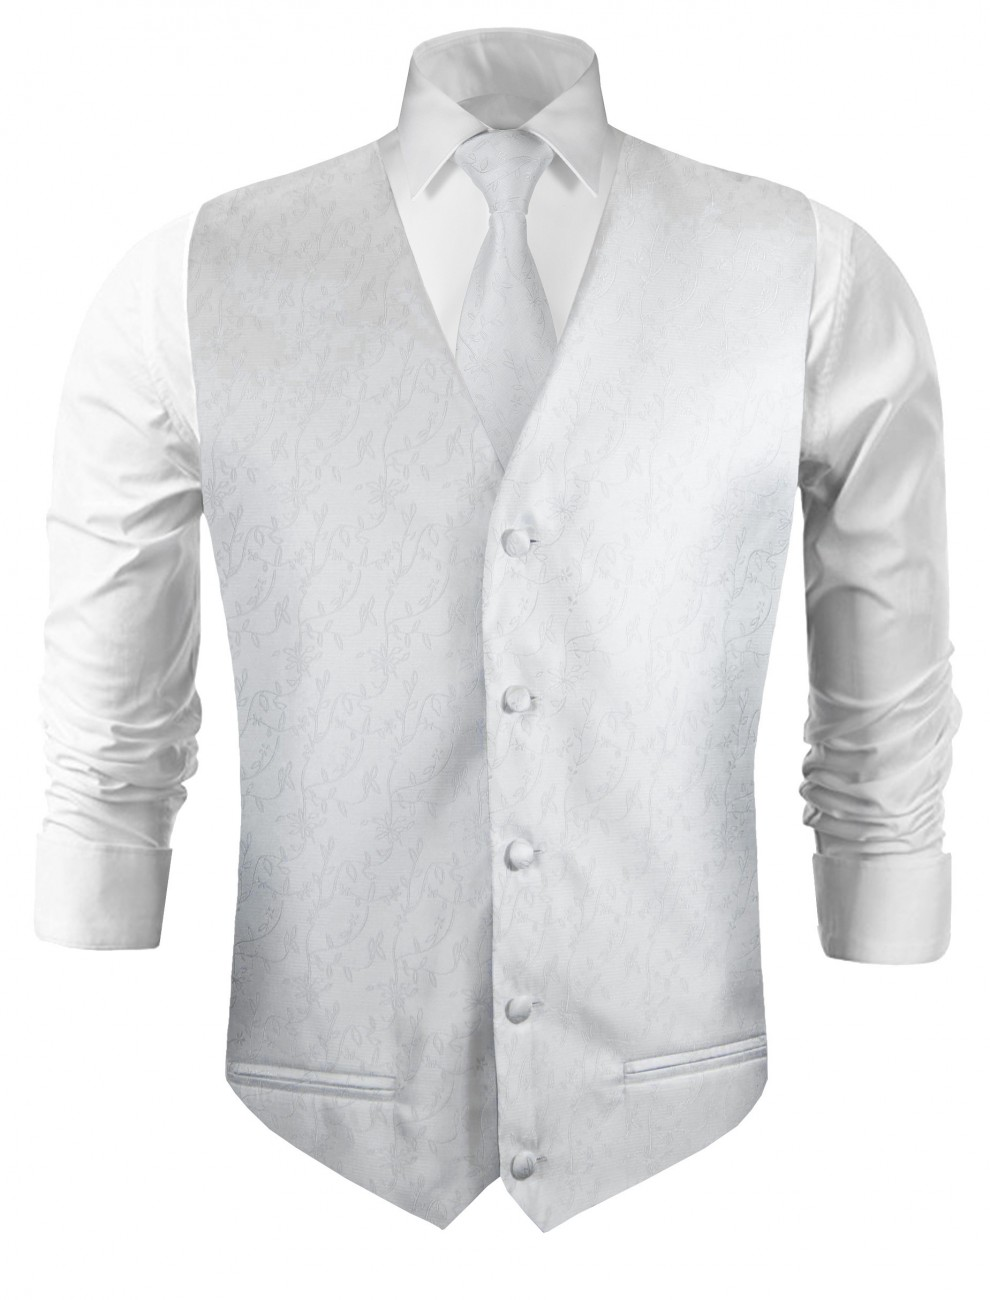 Wedding vest with necktie silver white floral